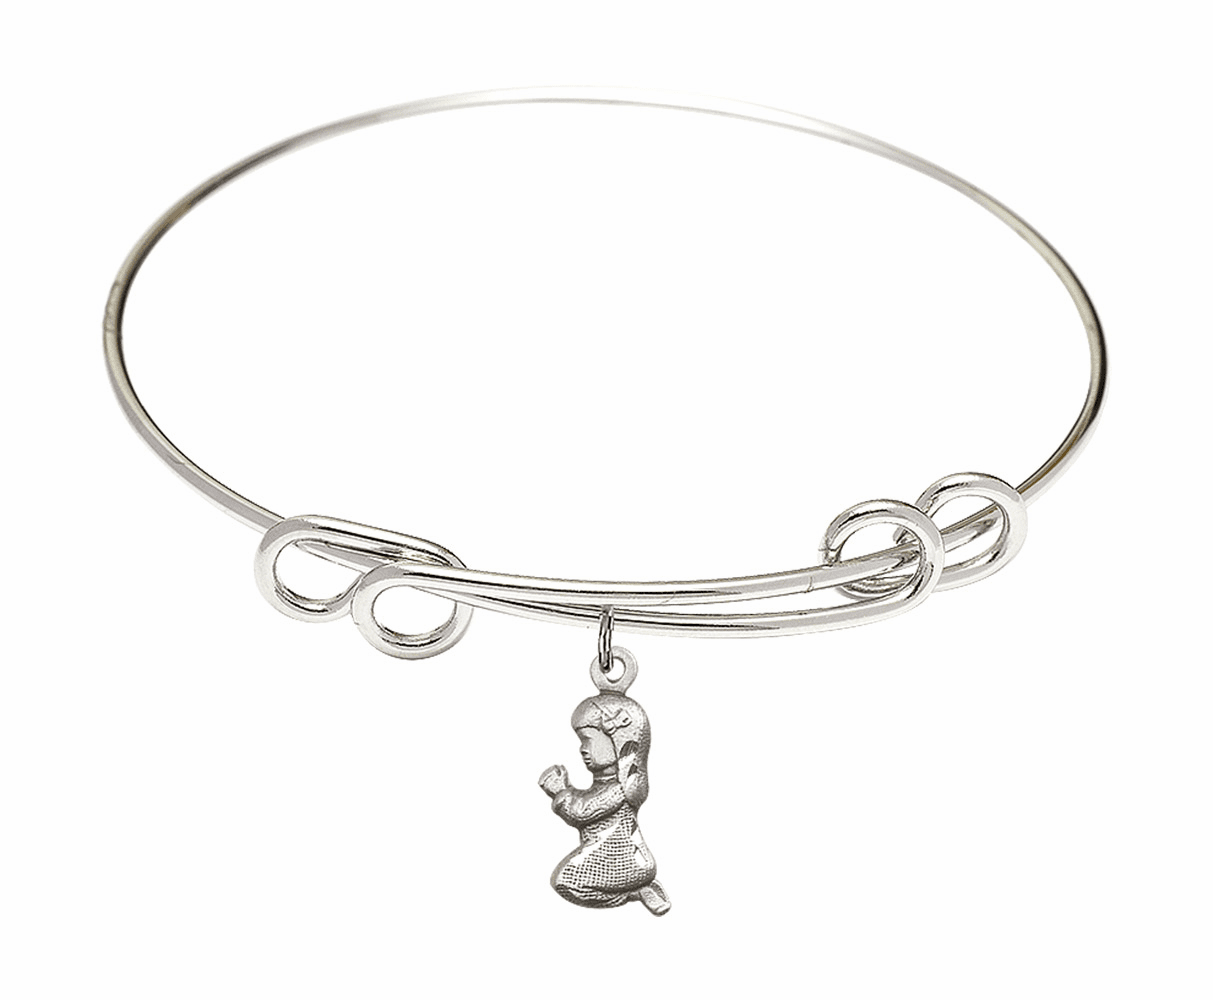 Round Double Loop Bangle Bracelet w/Praying Girl Sterling Silver Charm by Bliss Mfg